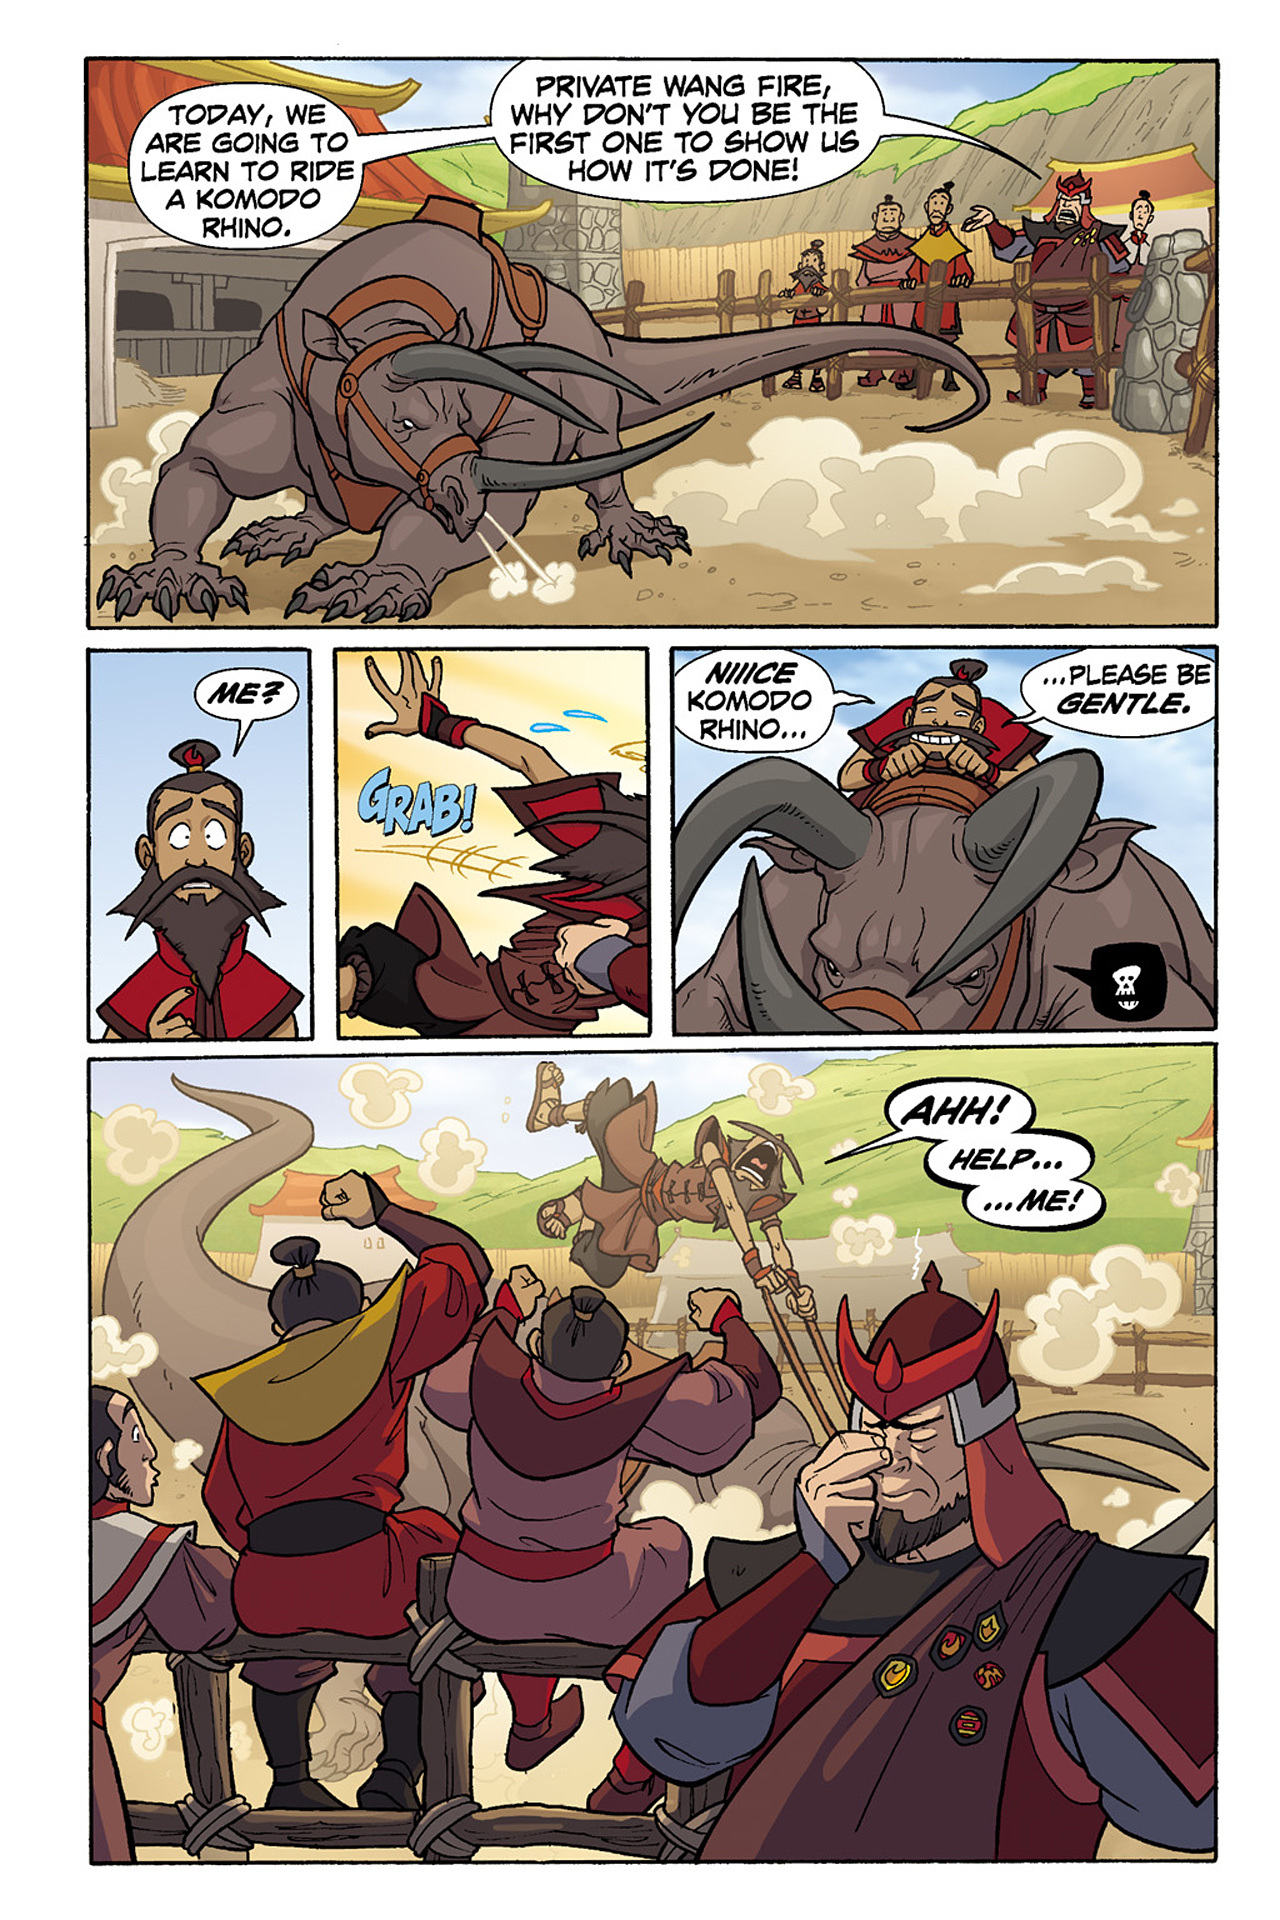 Nickelodeon Avatar: The Last Airbender - The Lost Adventures chap full pic 124